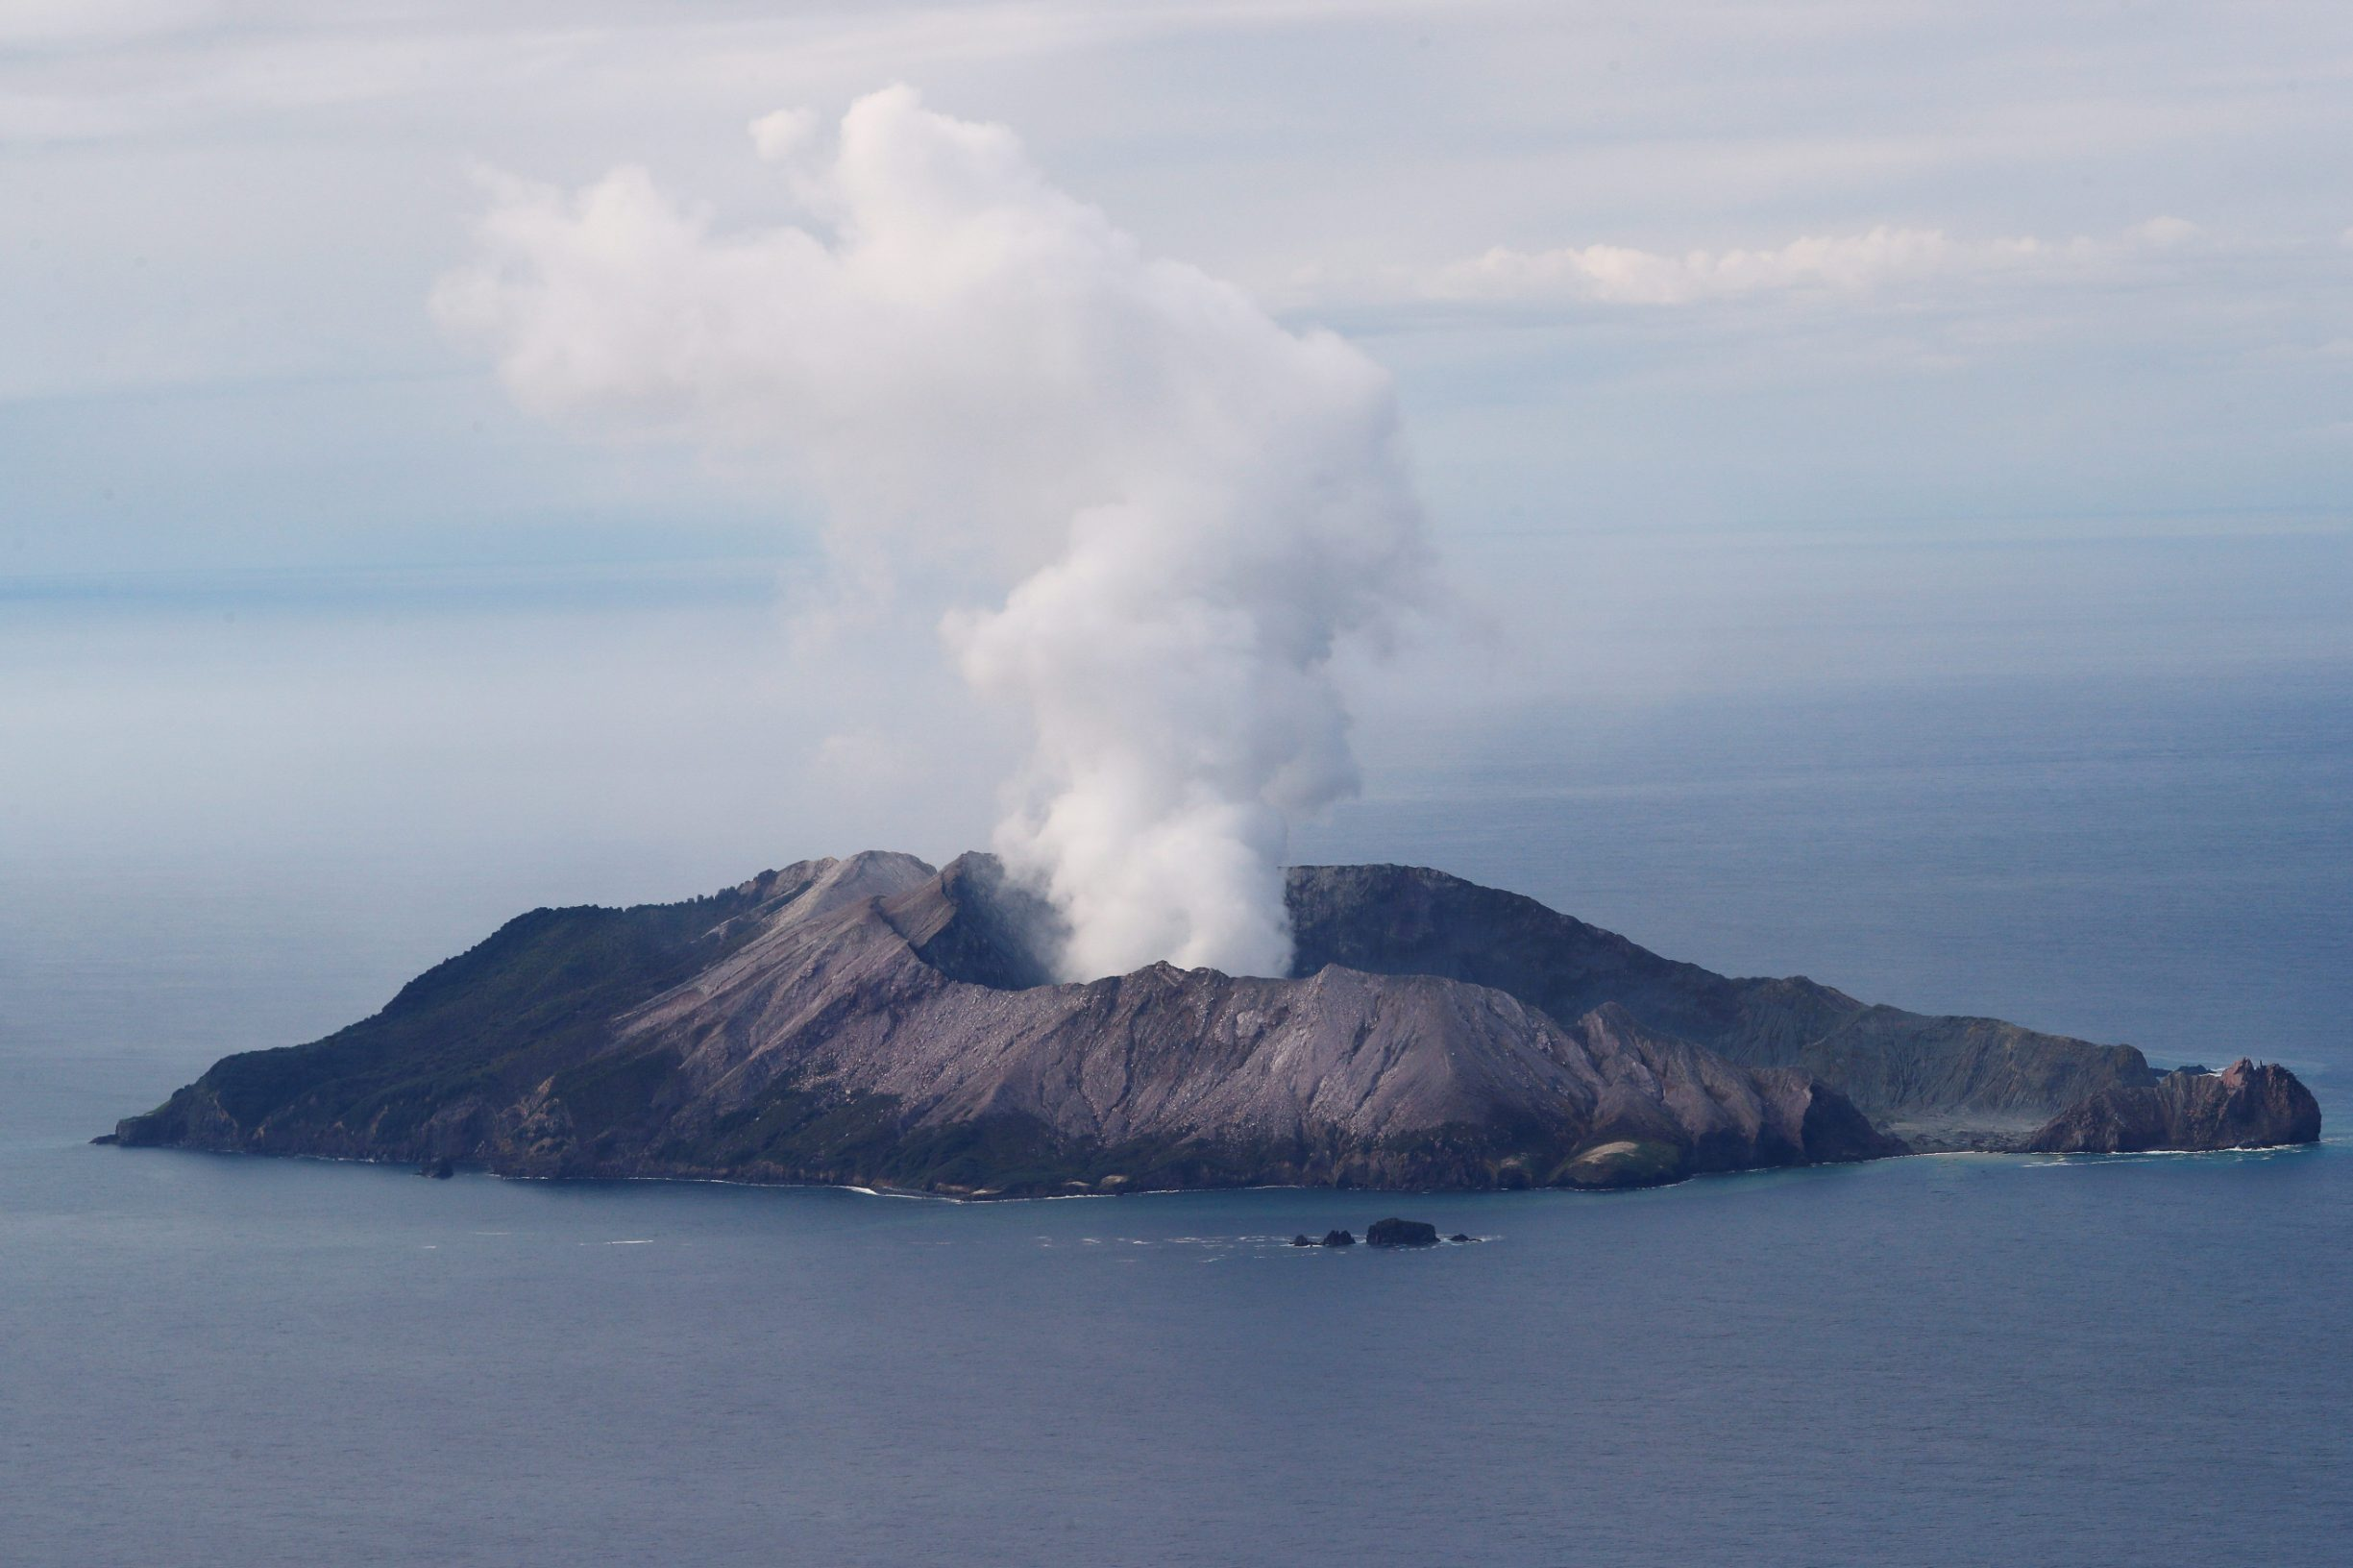 An aerial view of the Whakaari, also known as White Island volcano, in New Zealand, December 12, 2019. REUTERS/Jorge Silva REFILE - CORRECTING LOCATION